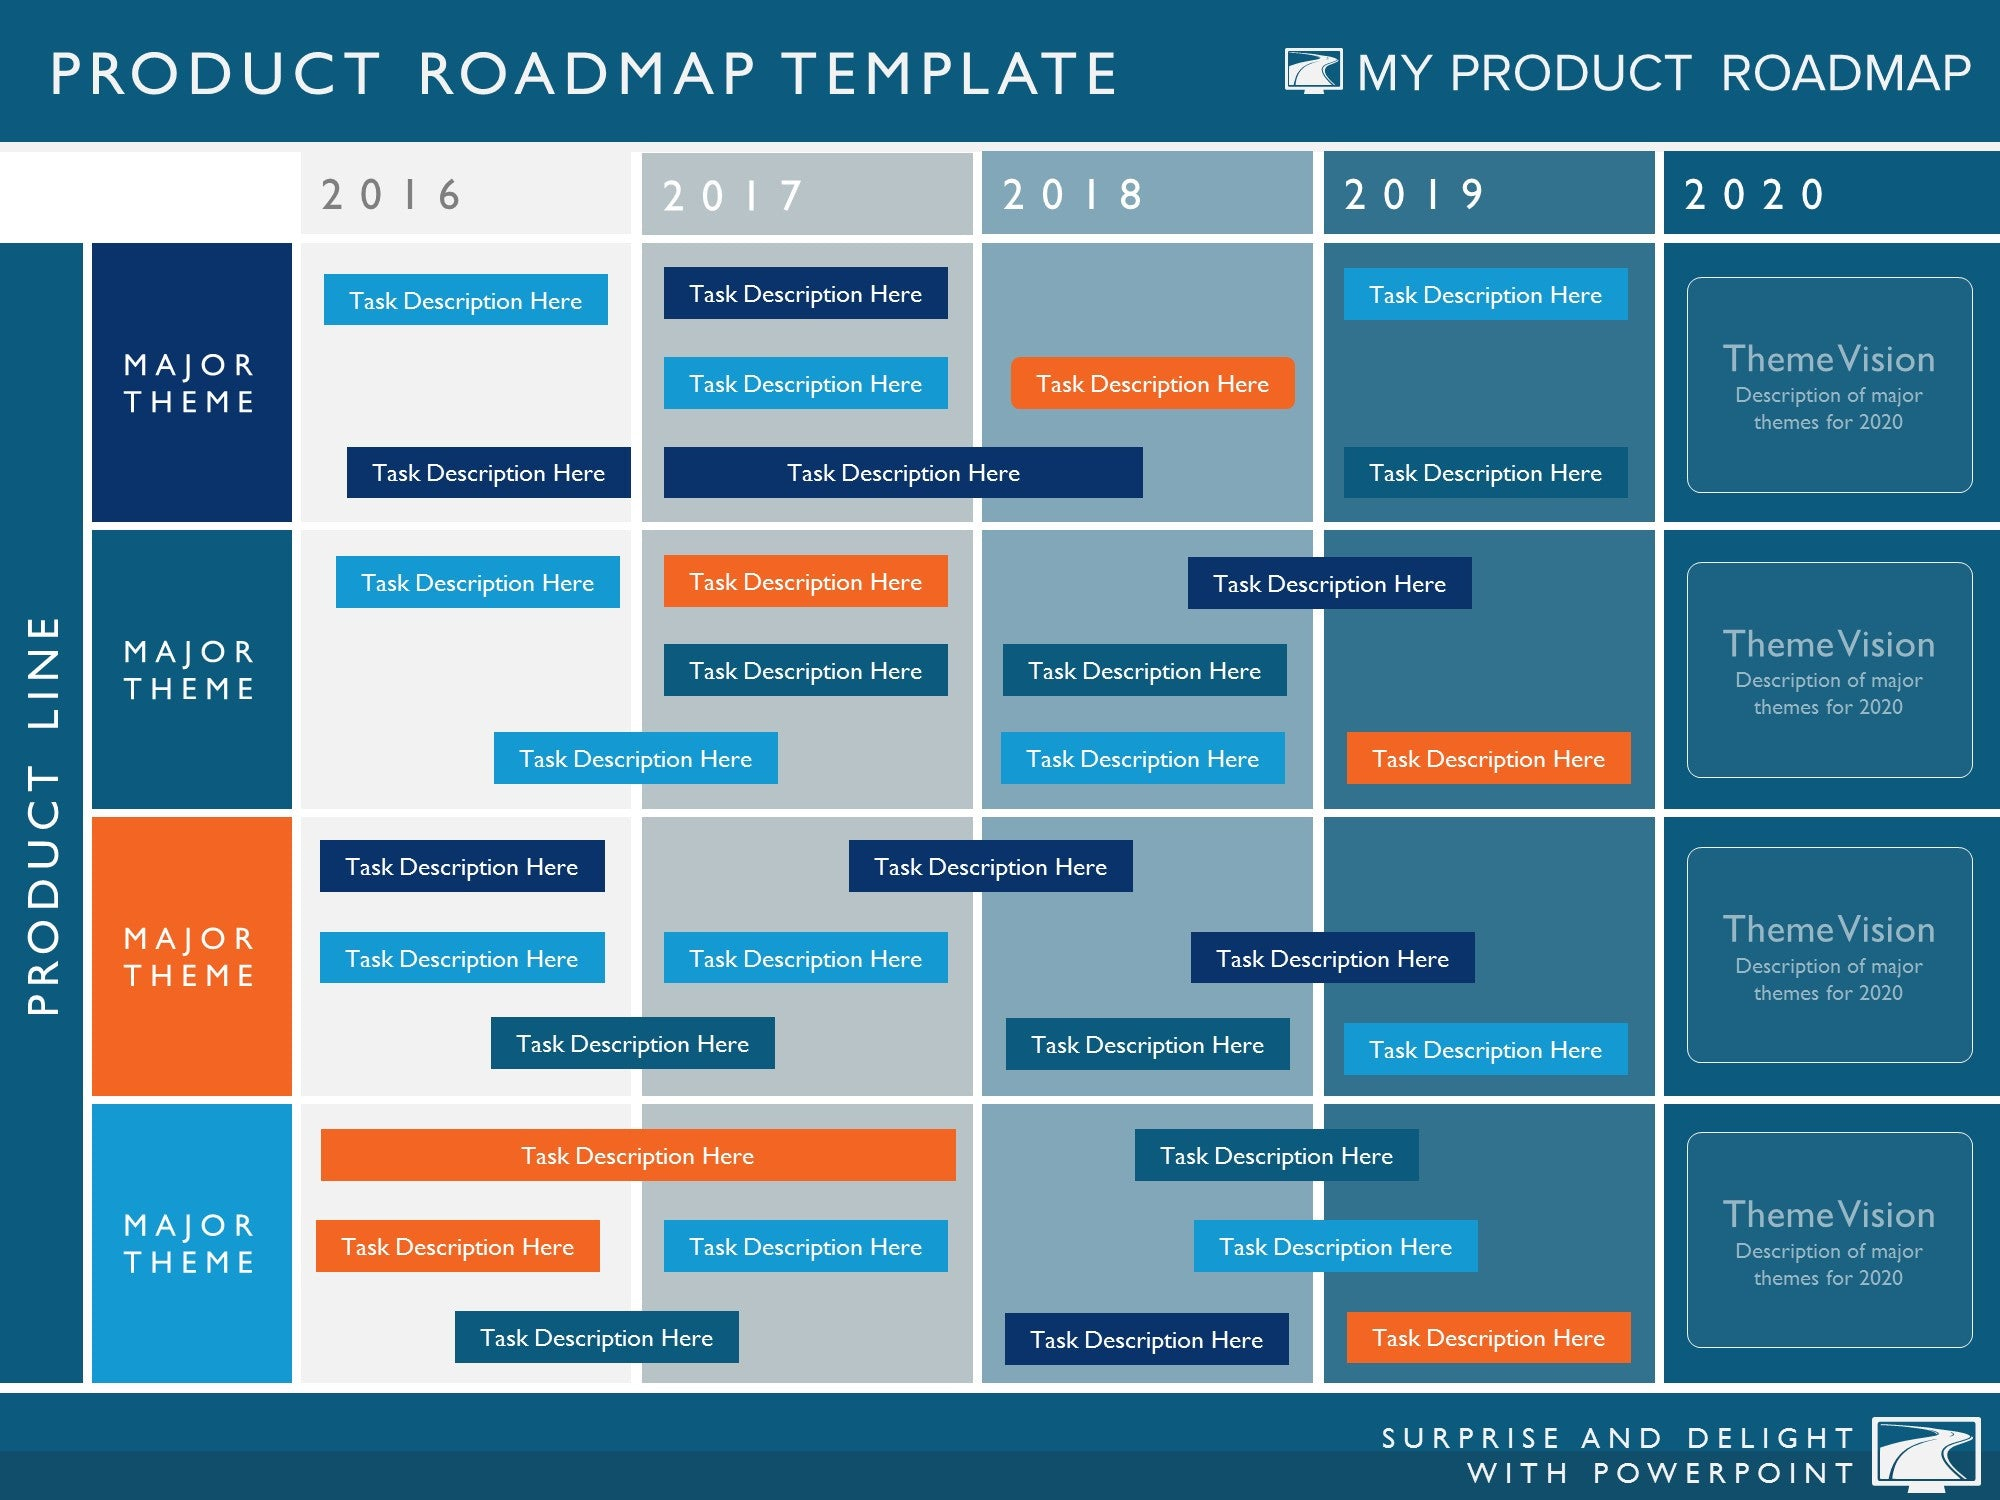 Five phase agile software timeline roadmap powerpoint diagram my product strategy development cycle planning timeline templates stages software management tools ppt manager marketing roadmap template toneelgroepblik